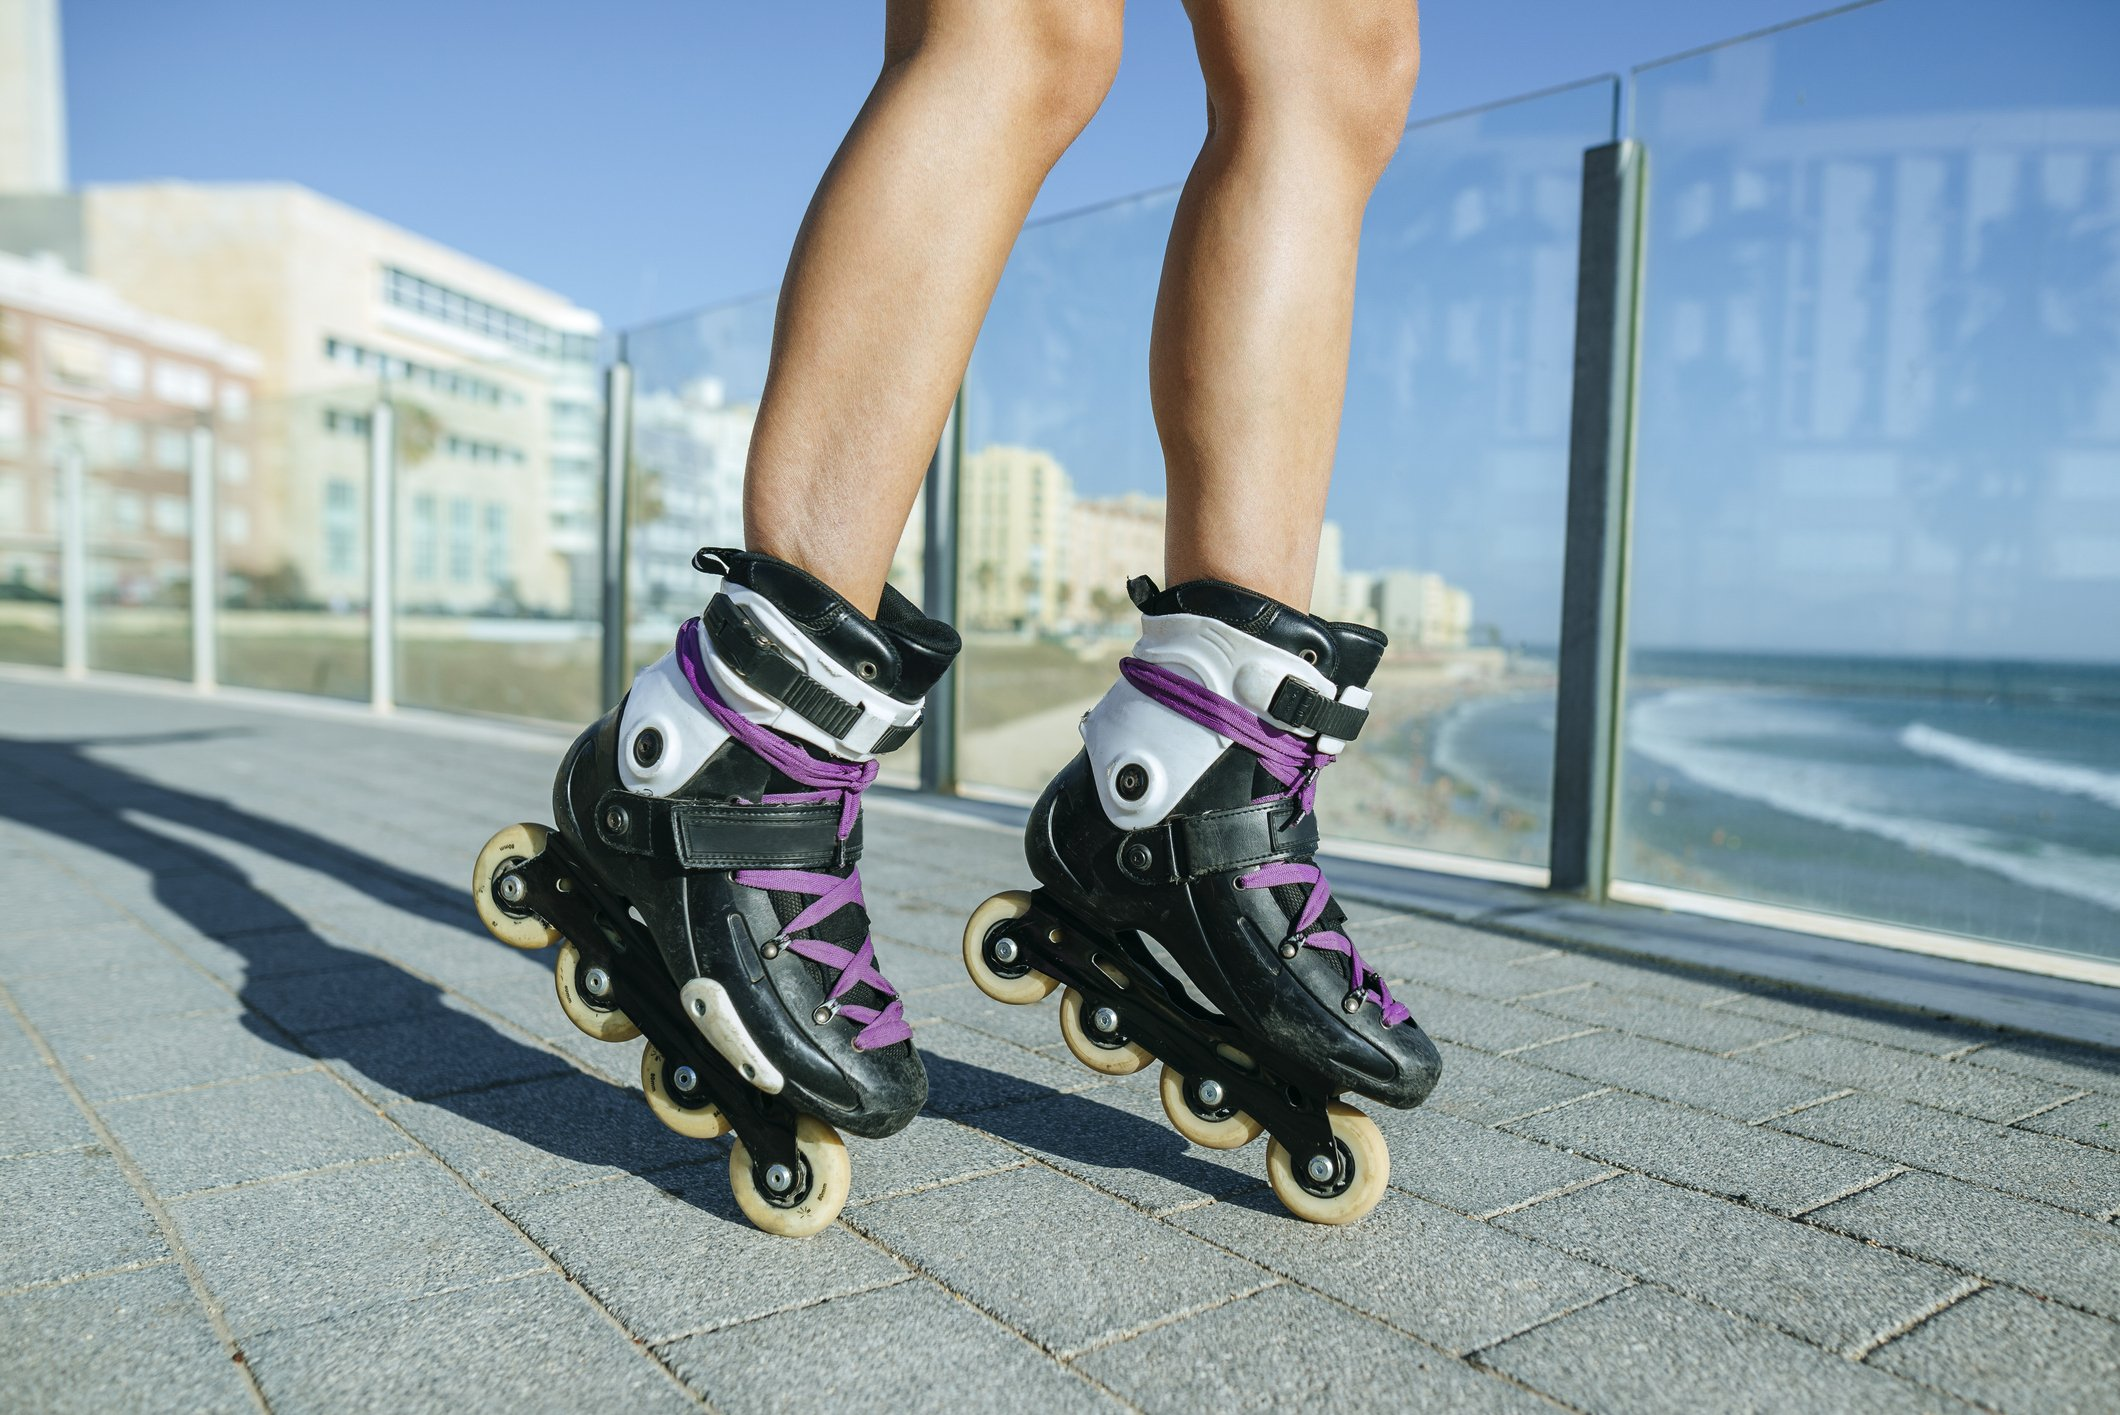 Oliver said he wanted roller skates.   Photo: Getty Images